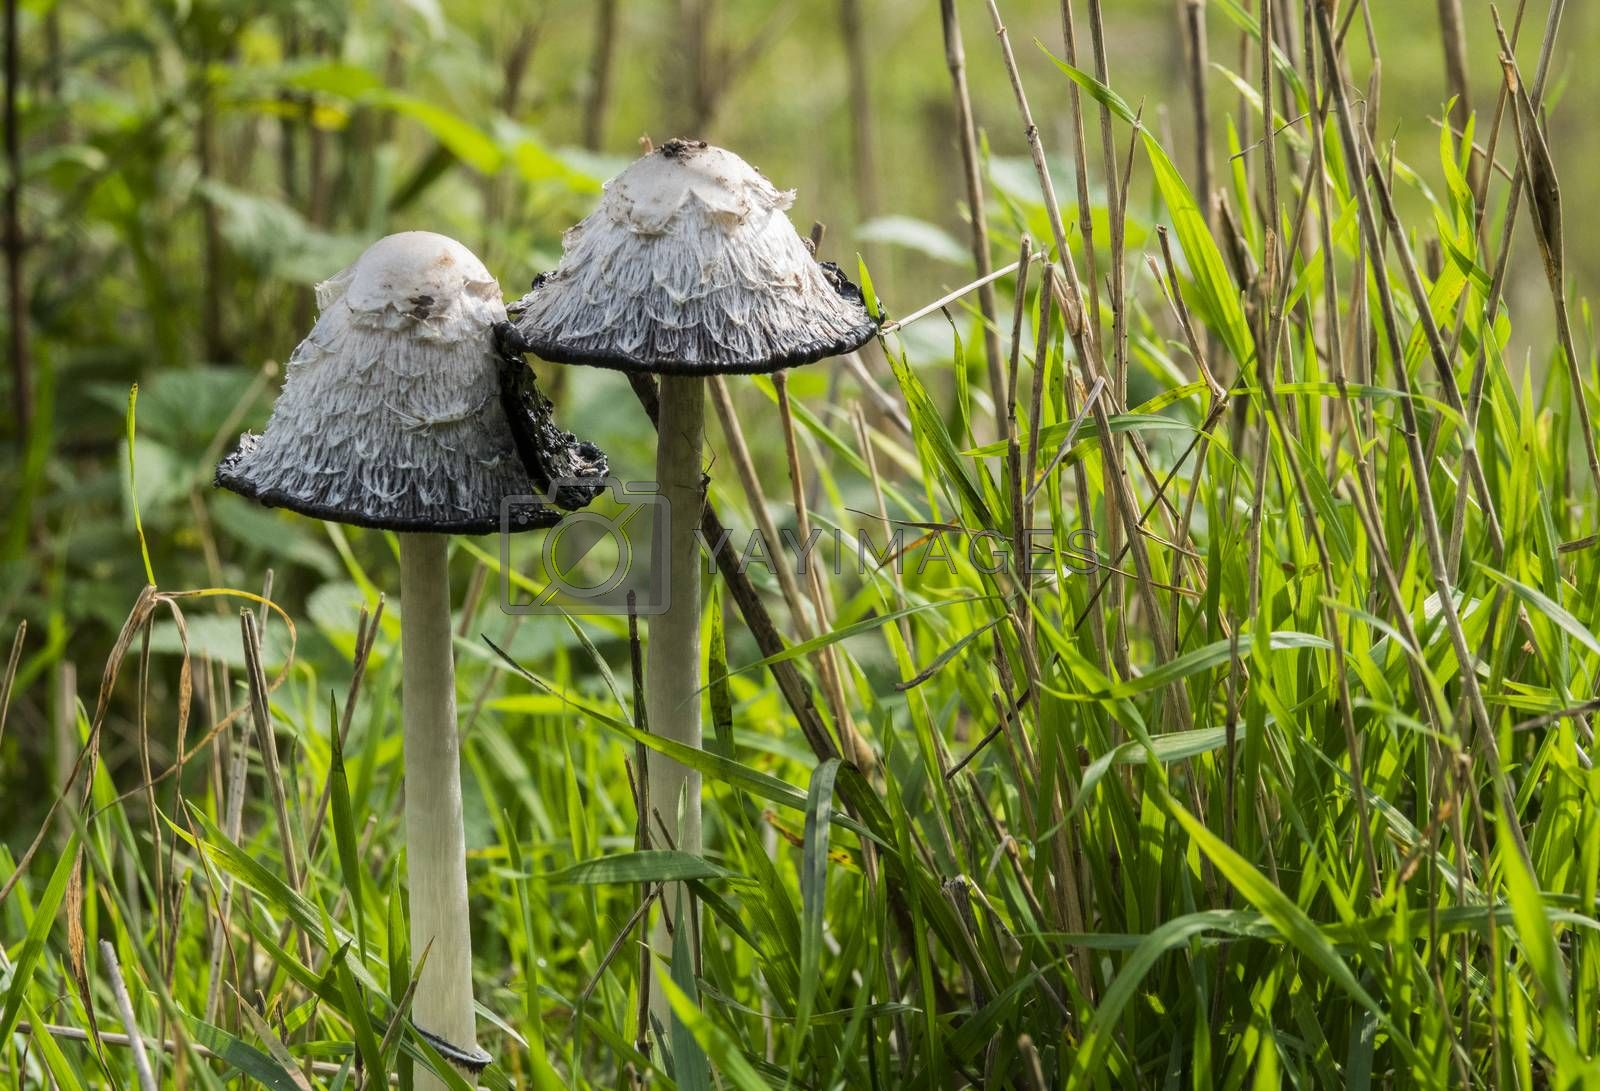 Shaggy ink caps, also lawyer's wigs or shaggy manes or the Coprinus comatus fungus in autumn forest in holland during autumn in the national park de biesbosch